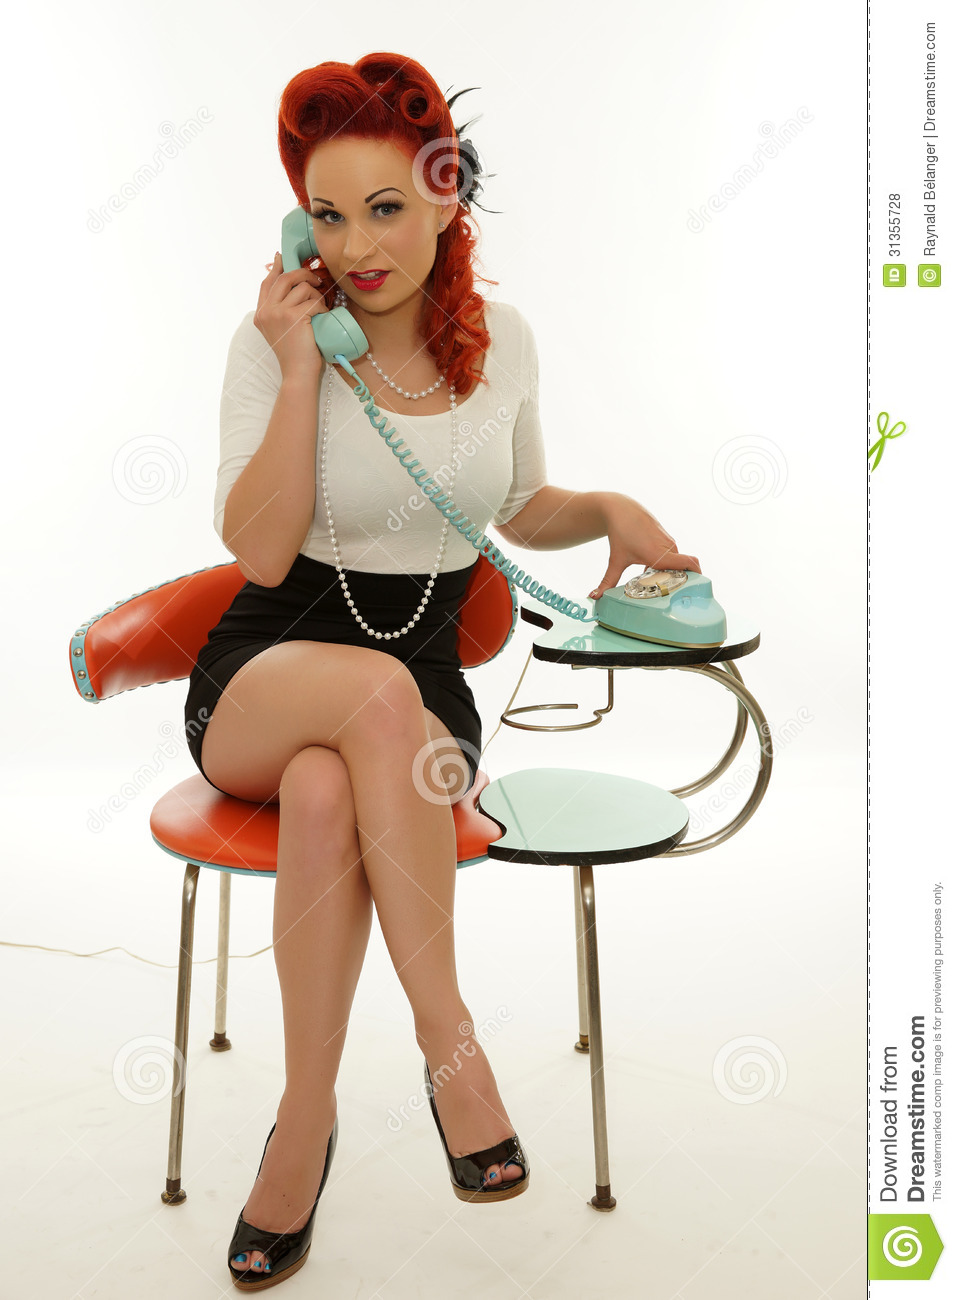 Femme de pin up tenant un t l phone de vintage photos libres de droits image 31355728 - Femme pin up ...